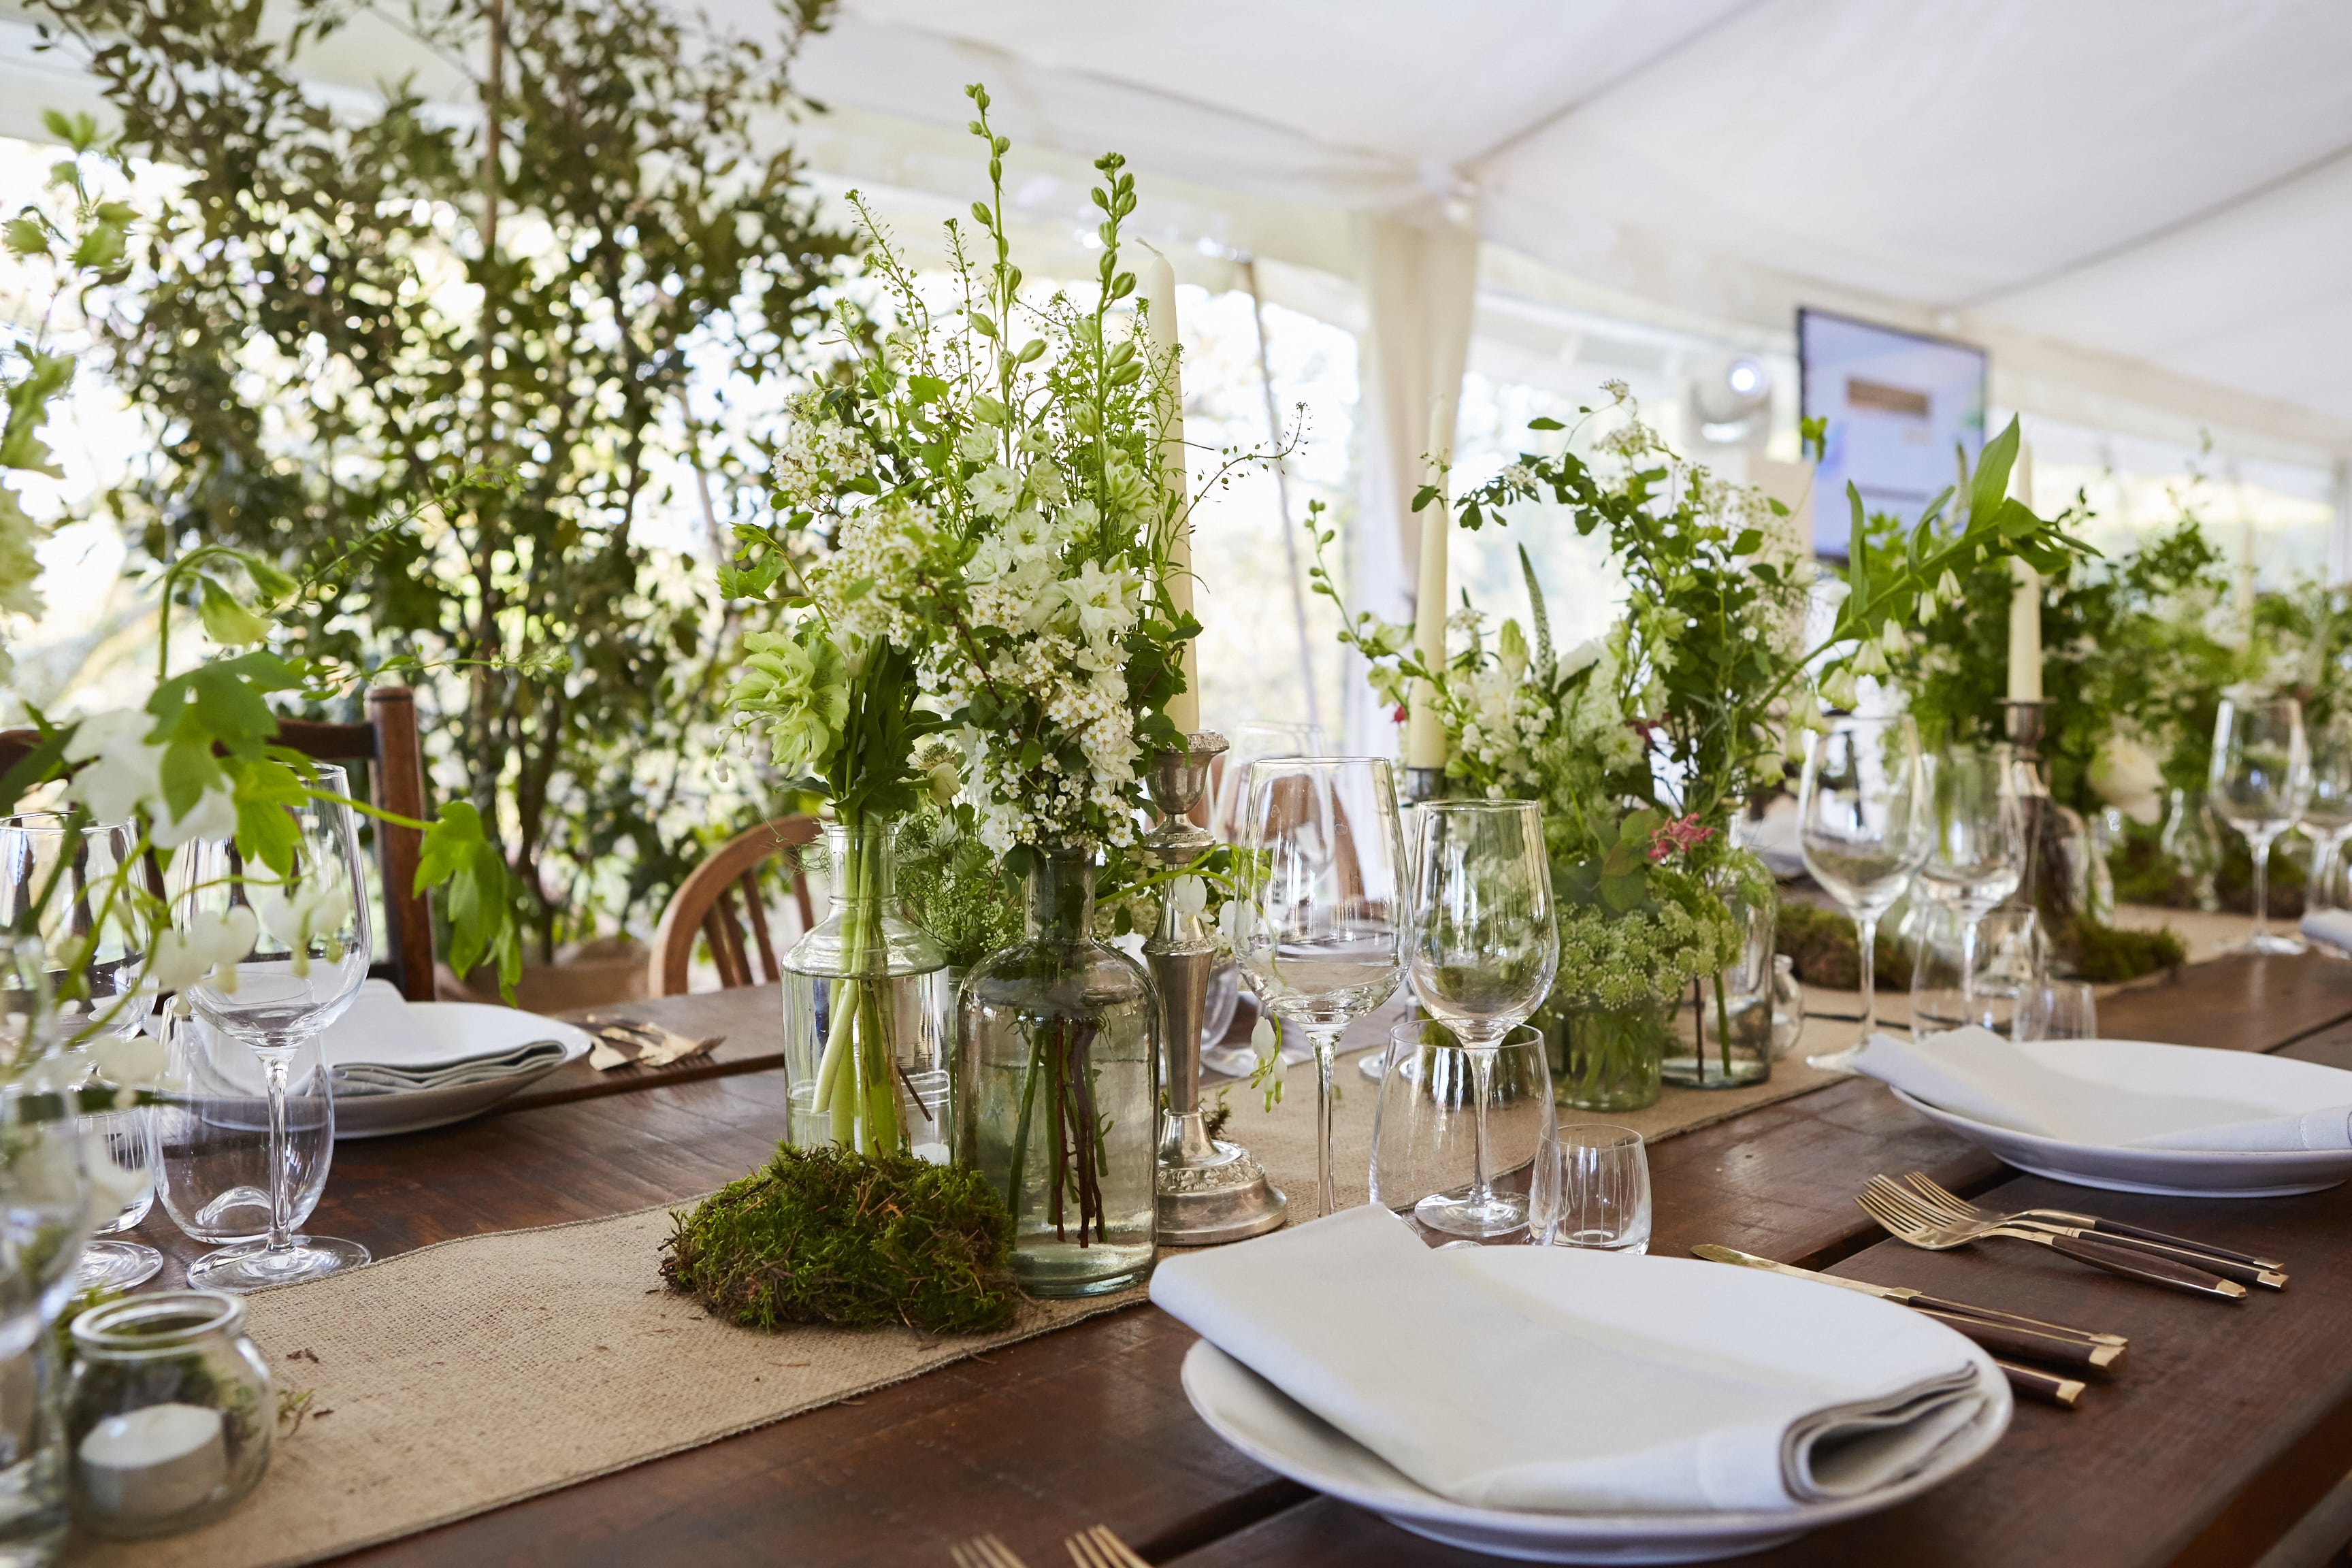 We Love A Bit Of Greenery And Re Not Alone The Team At Arabian Tent Company Share Their Thoughts On Biophilic Design How It Can Help You To